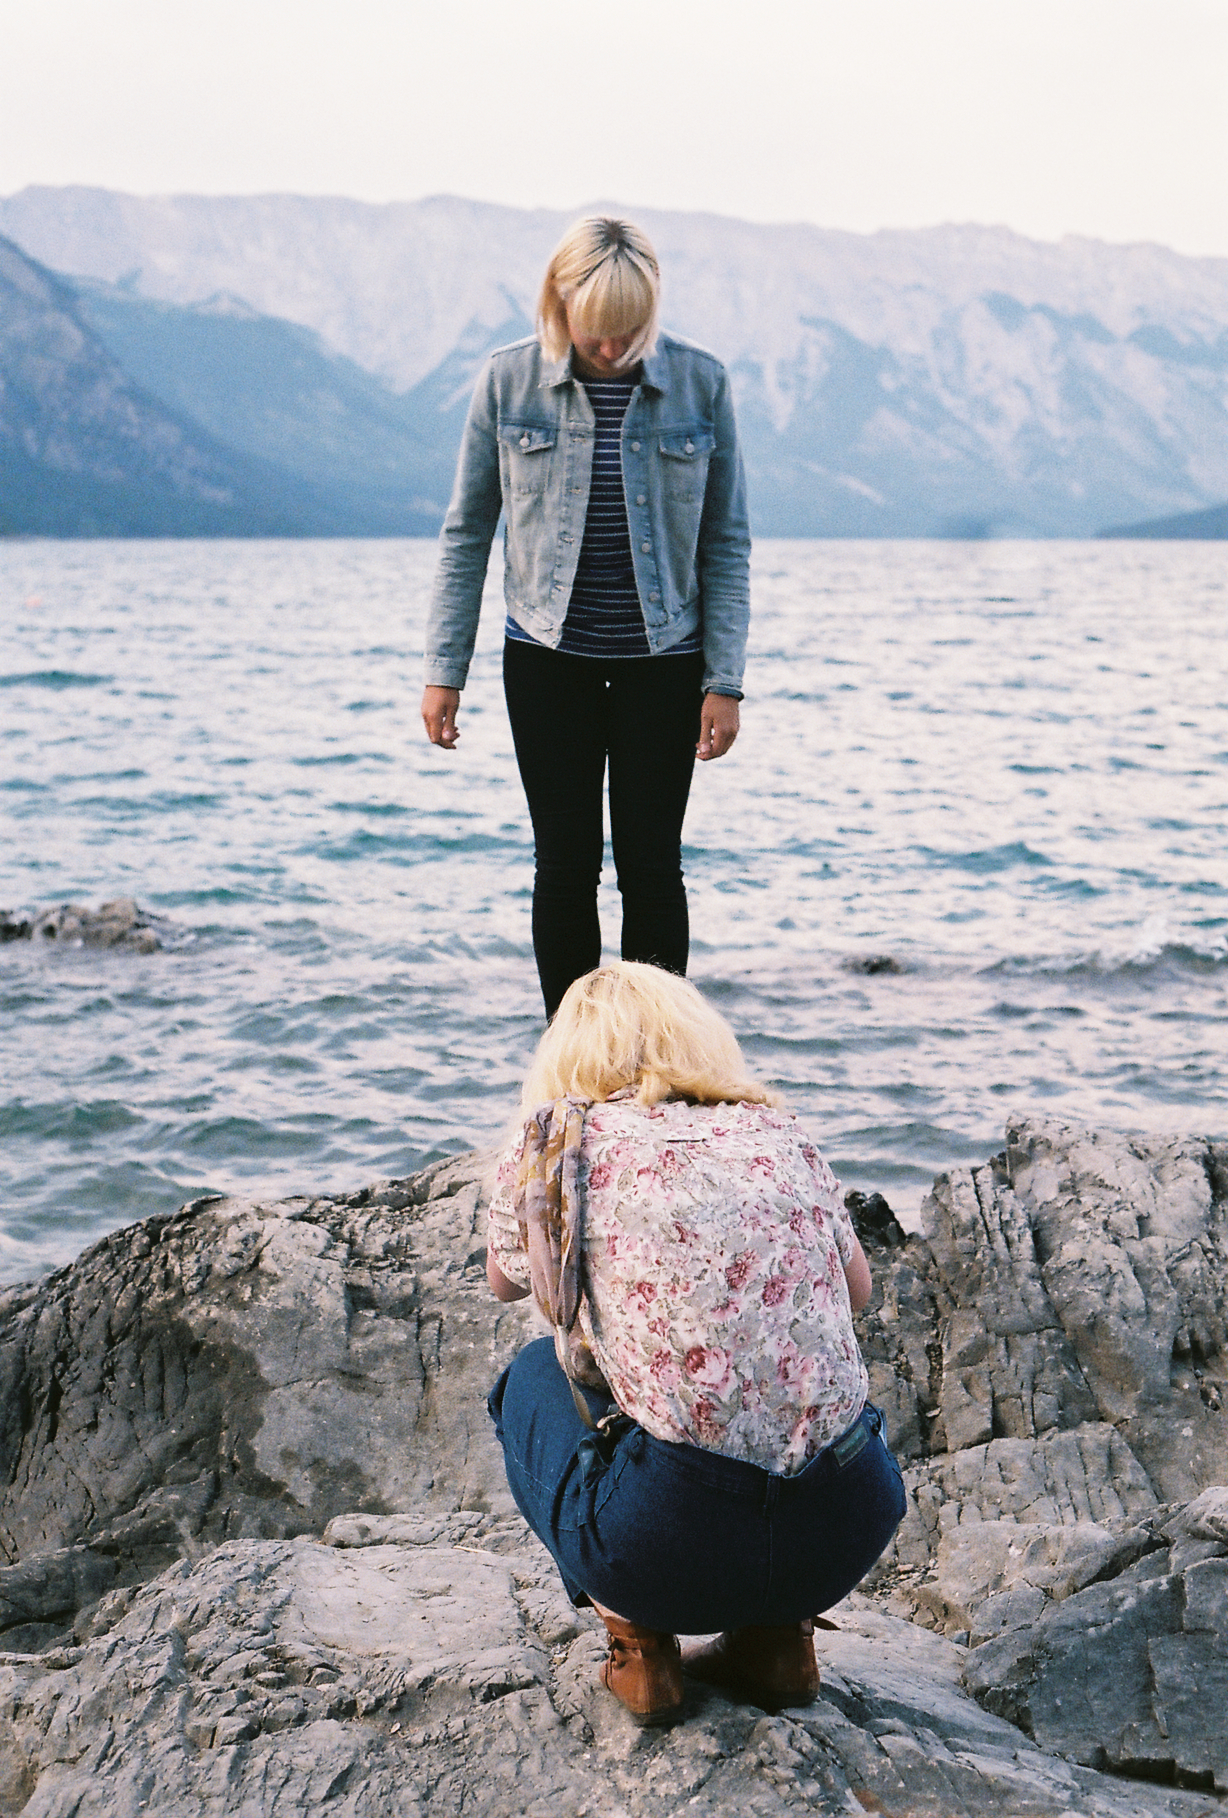 carmyn & elyse at lake minnewanka